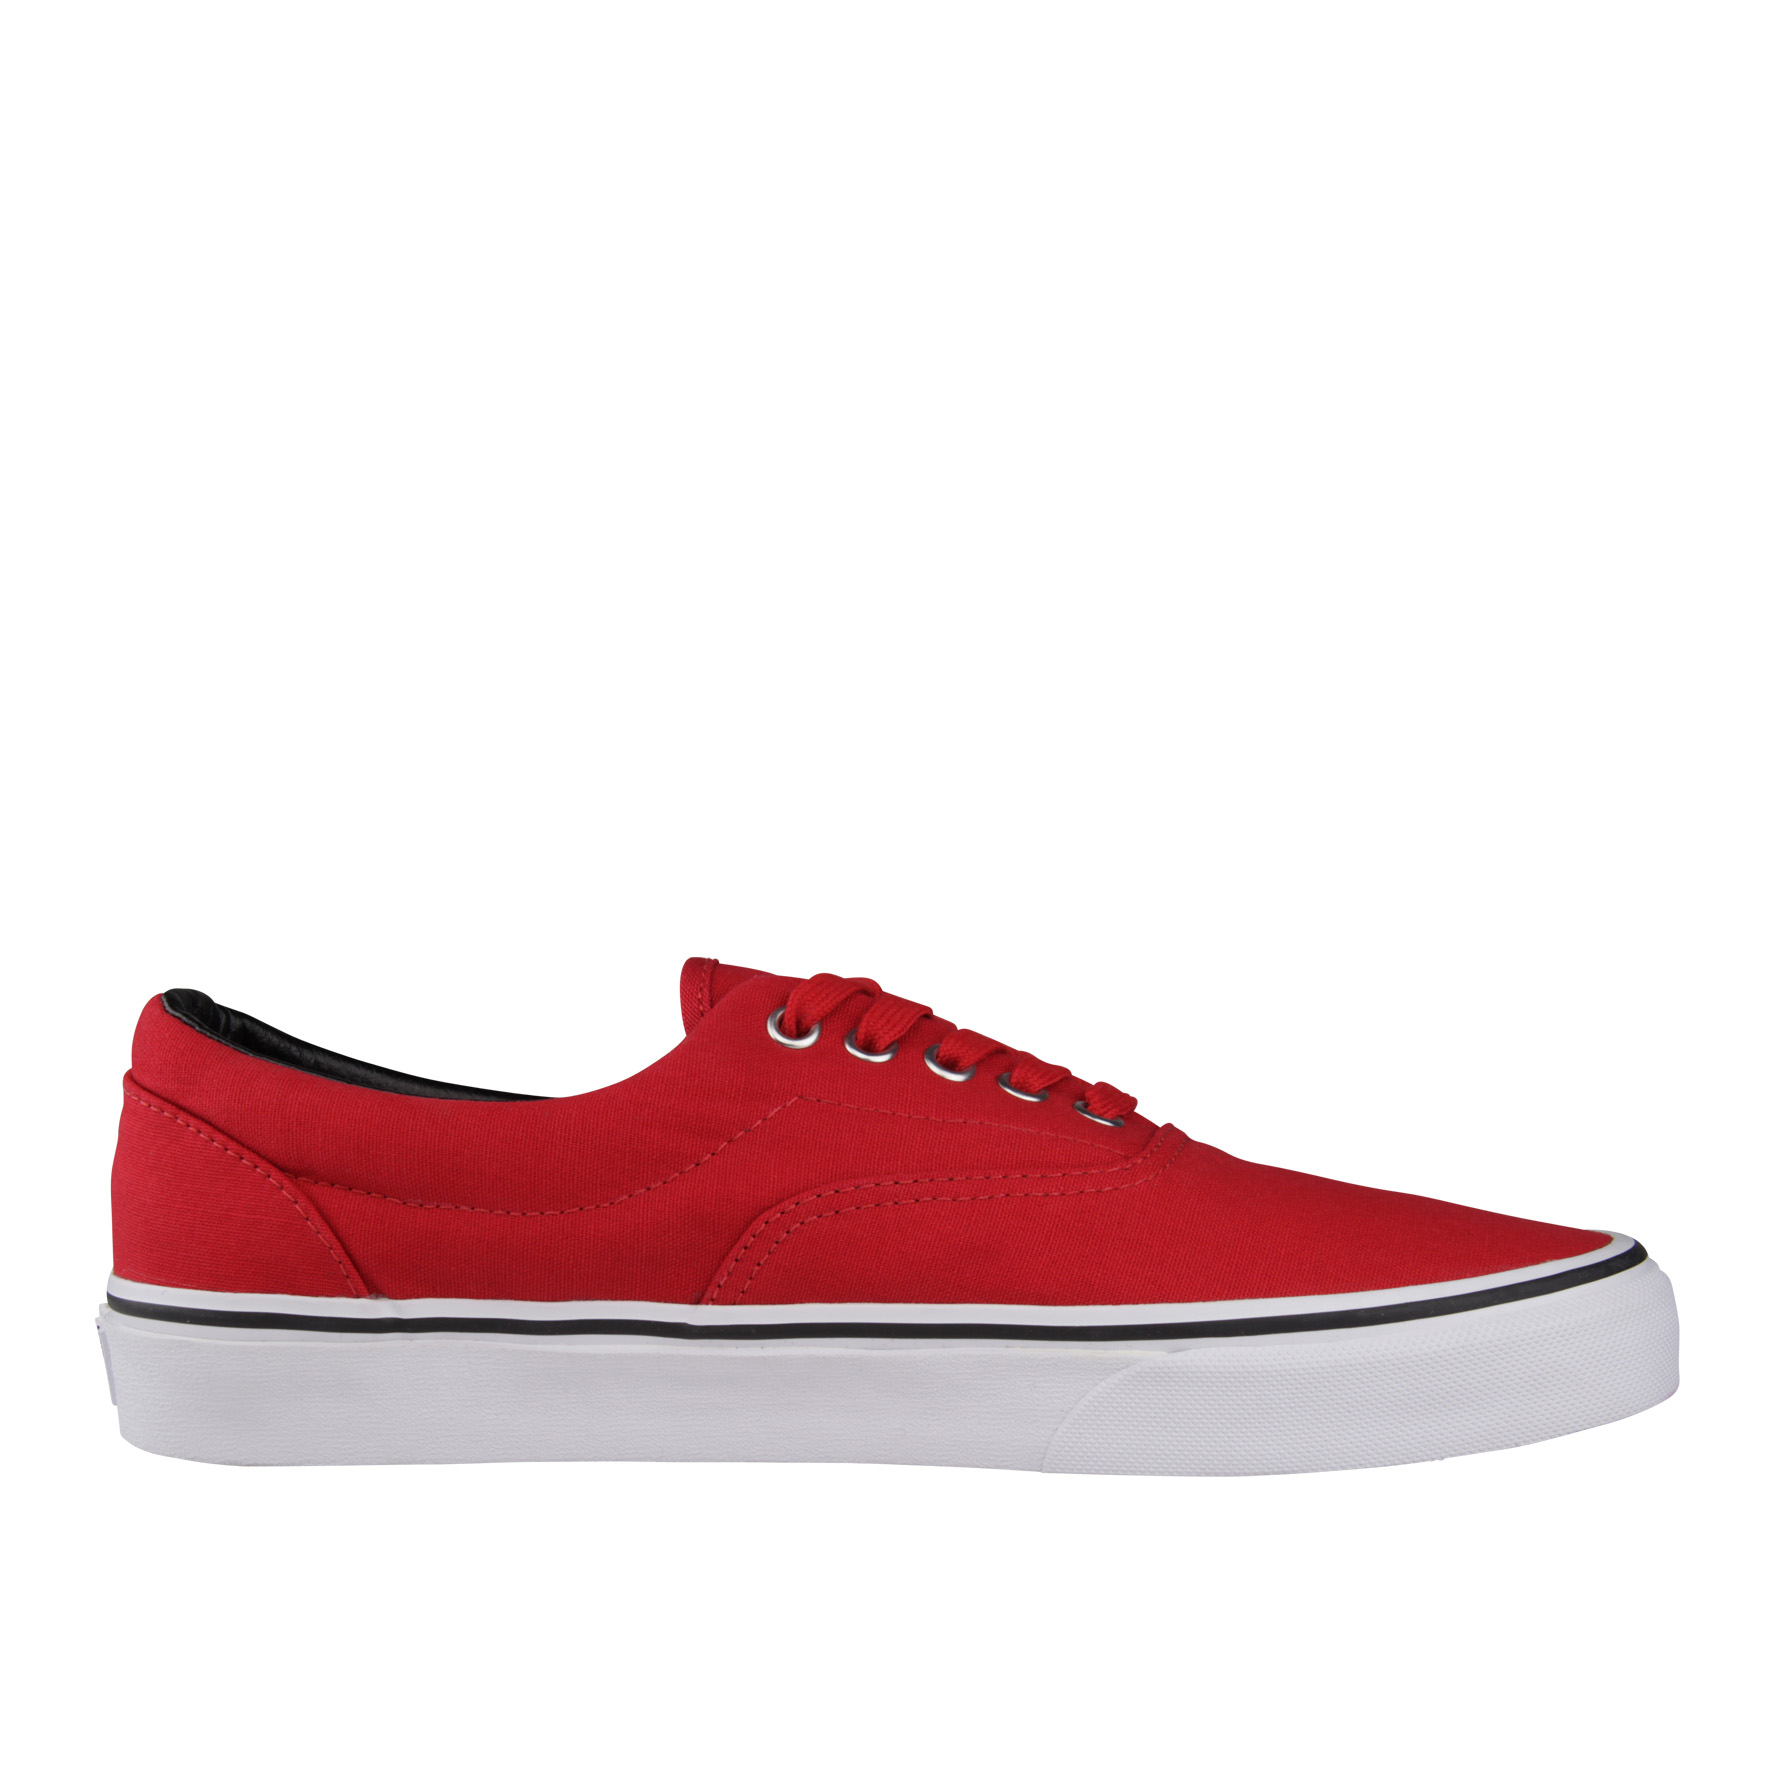 2 Foot E 70Di Off Vans Locker Acquista Il Case Ottieni Qualsiasi ON0vmw8n